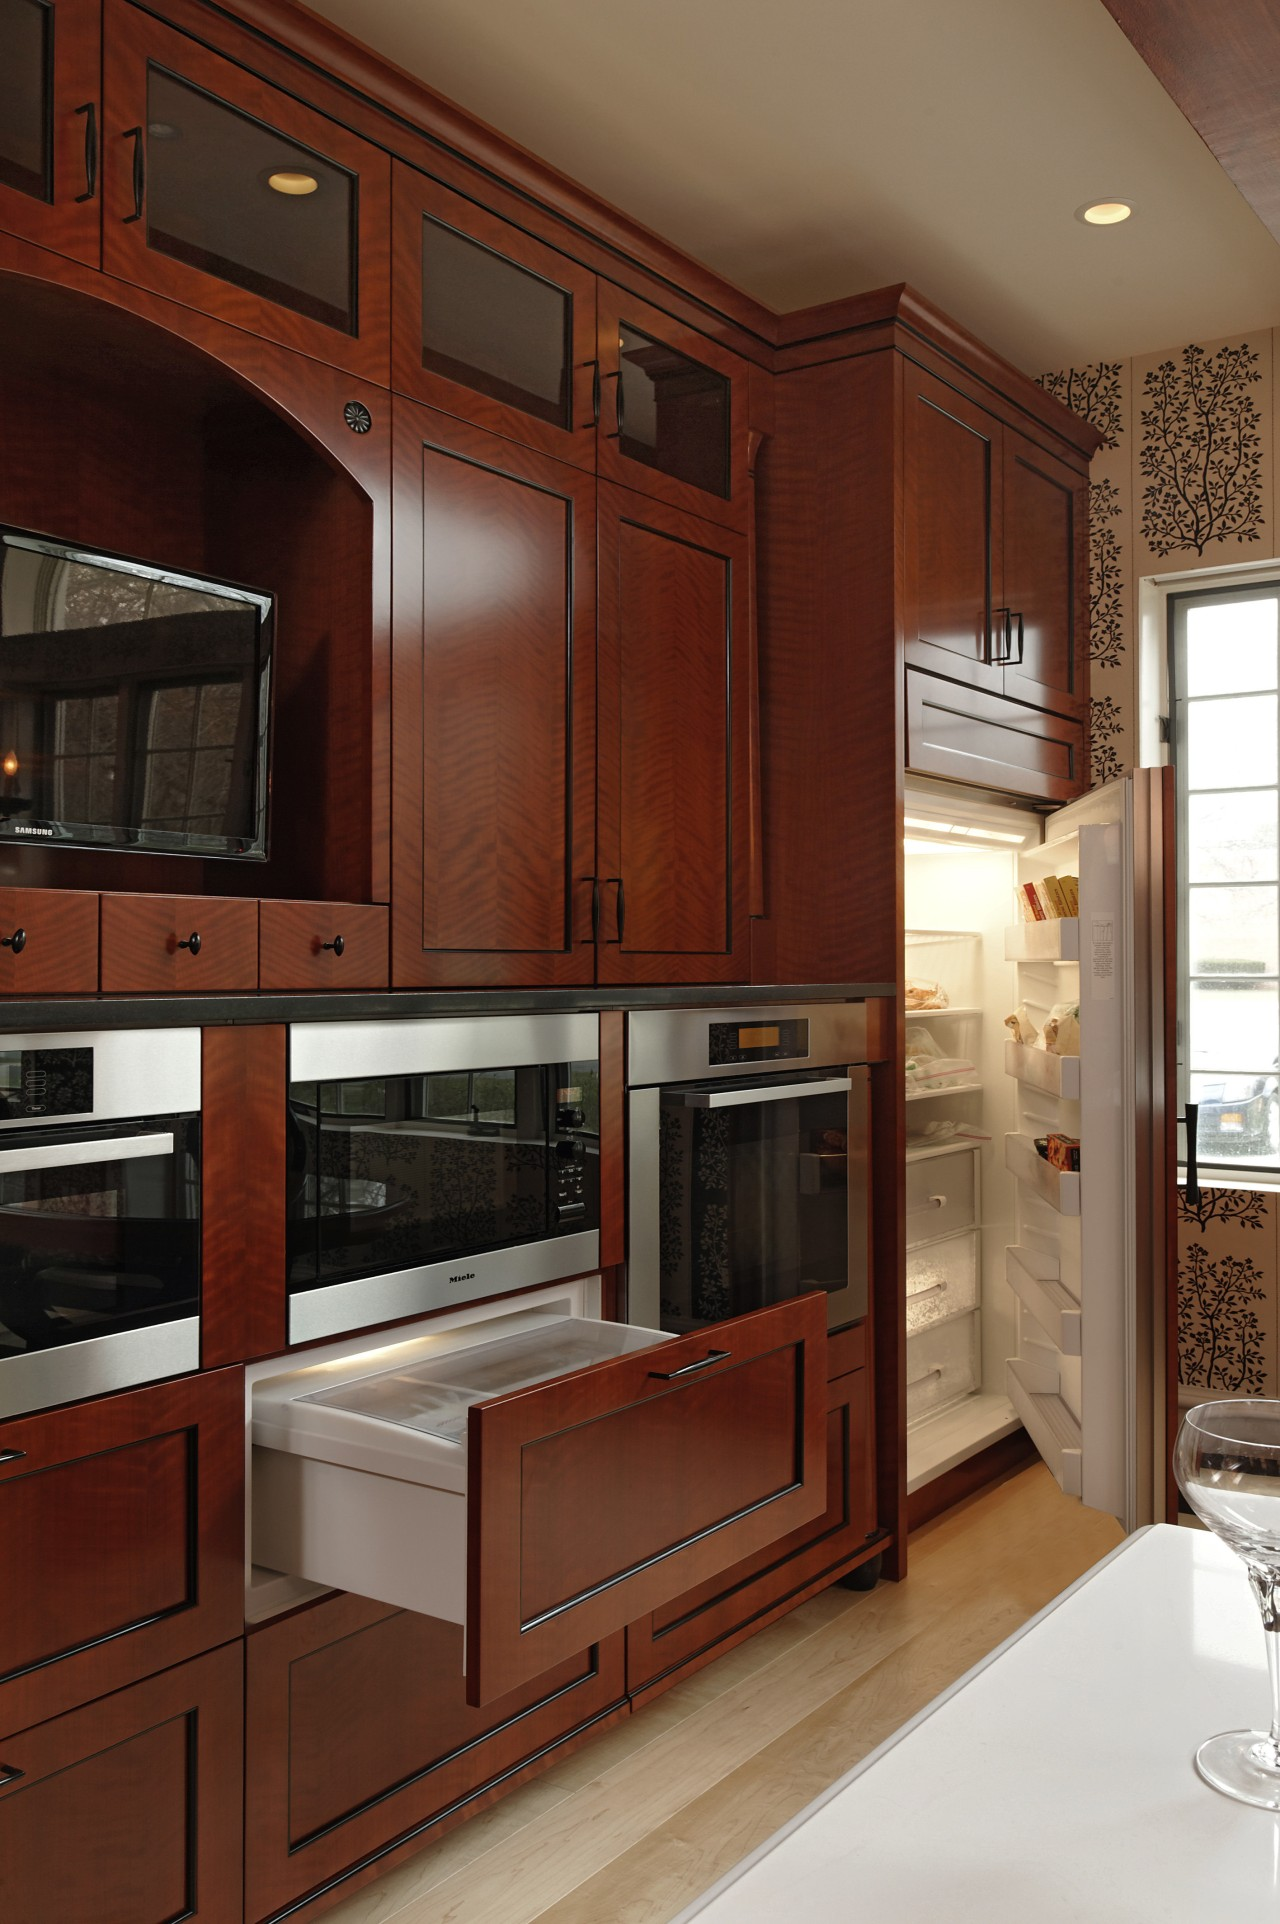 A bank of Rosewood kitchen cabinetry, containing integrated cabinetry, countertop, cuisine classique, furniture, interior design, kitchen, room, under cabinet lighting, wood, brown, red